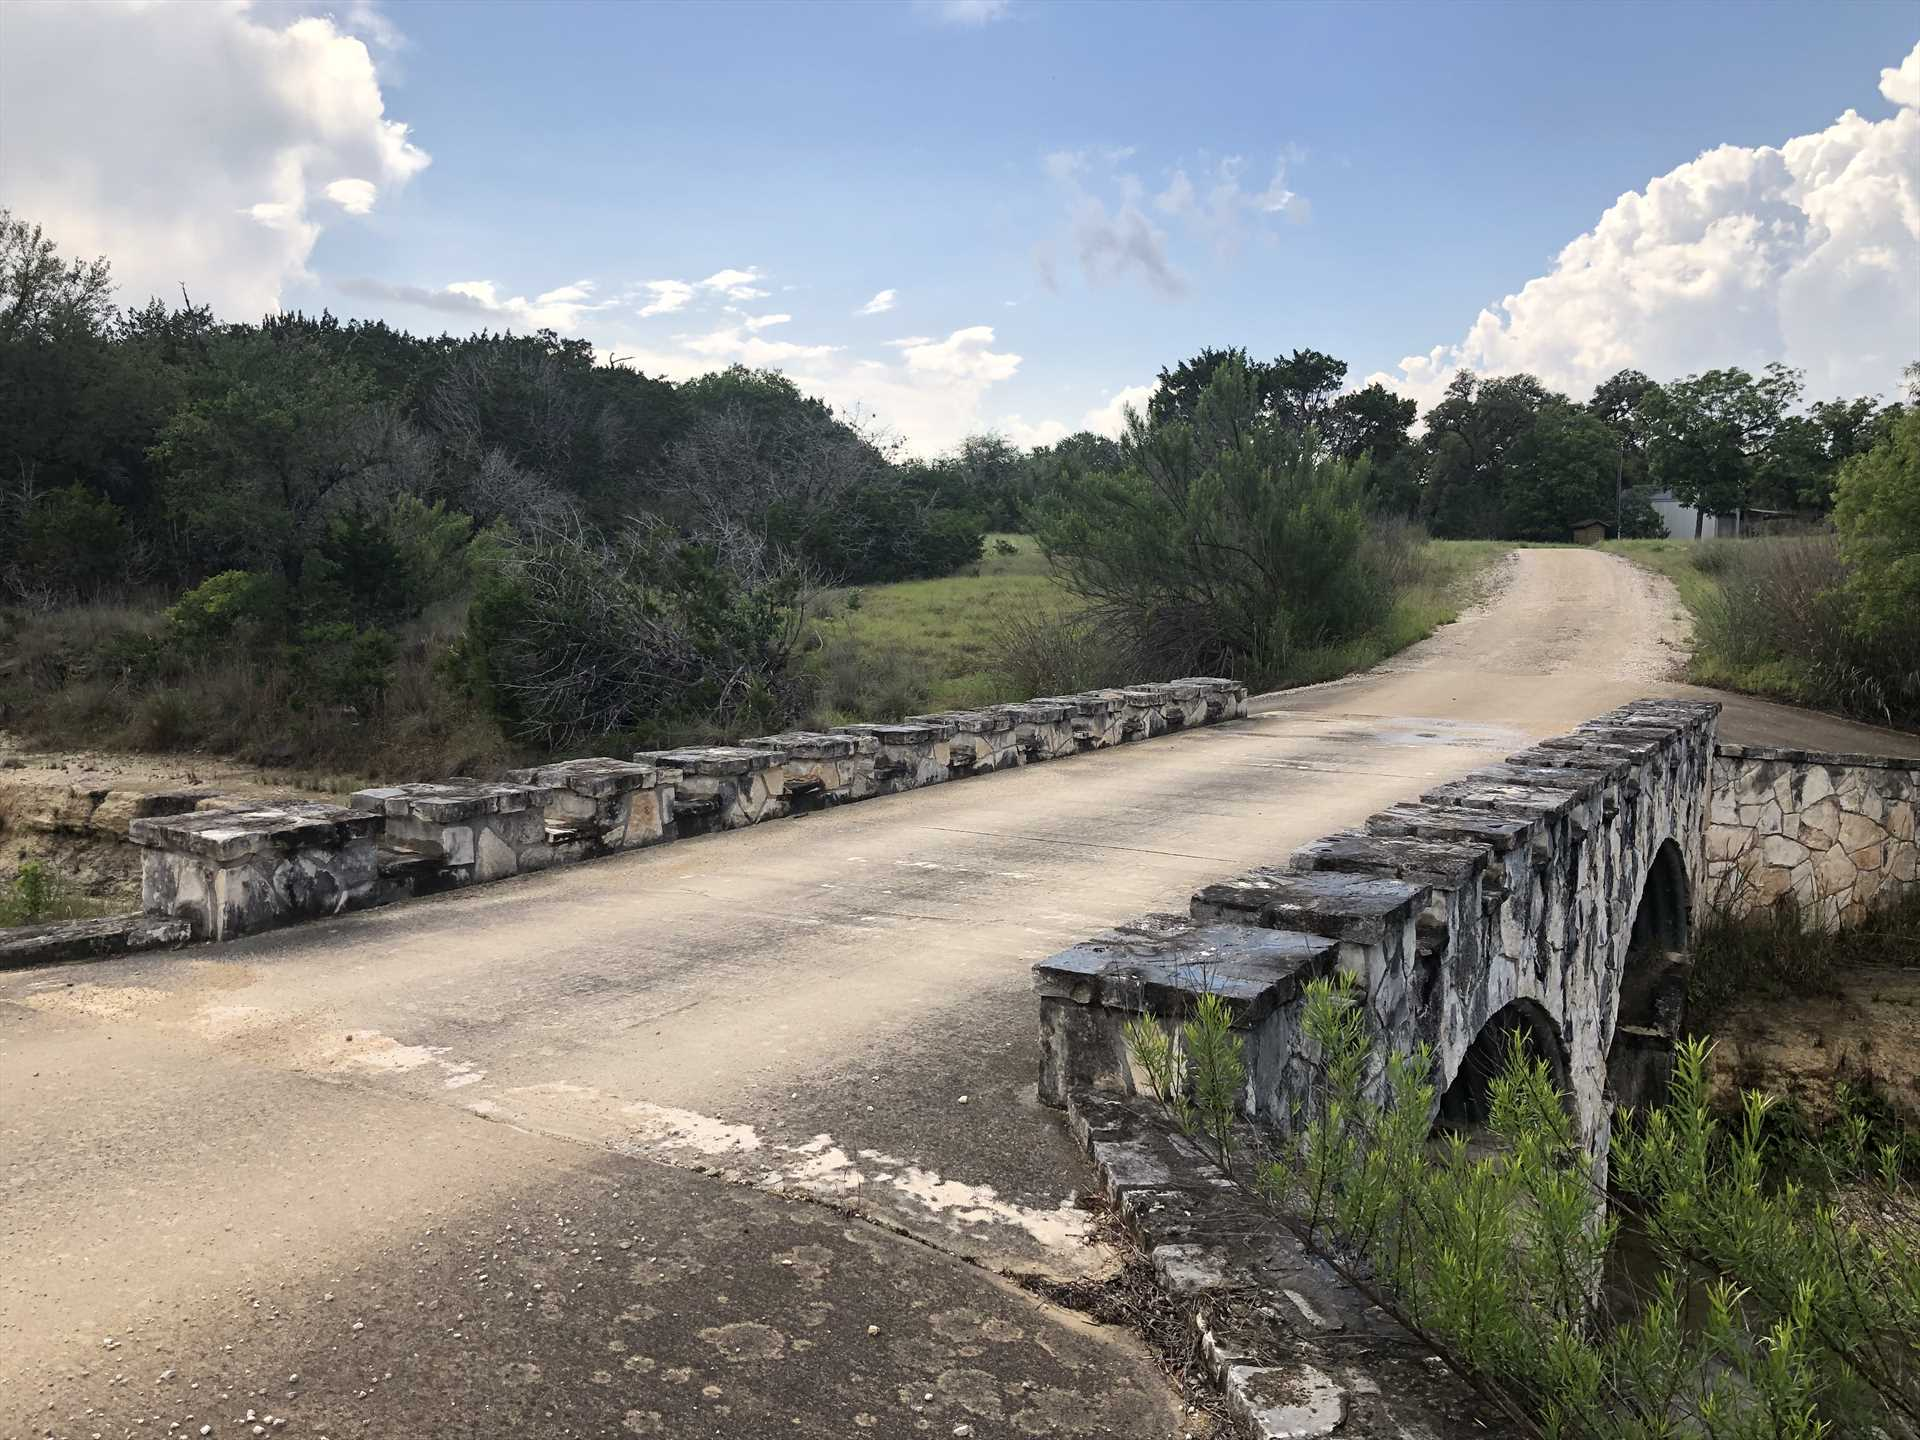 Plenty of scenic roads wind around the ranch. Set aside some time for a scenic tour of the Hill Country!